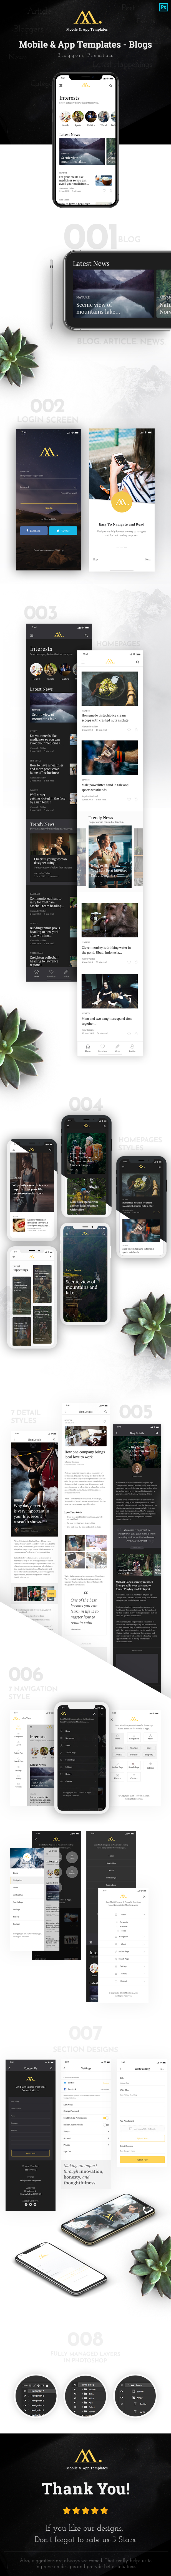 Mobile & App Templates - Blogs in Photoshop - 1